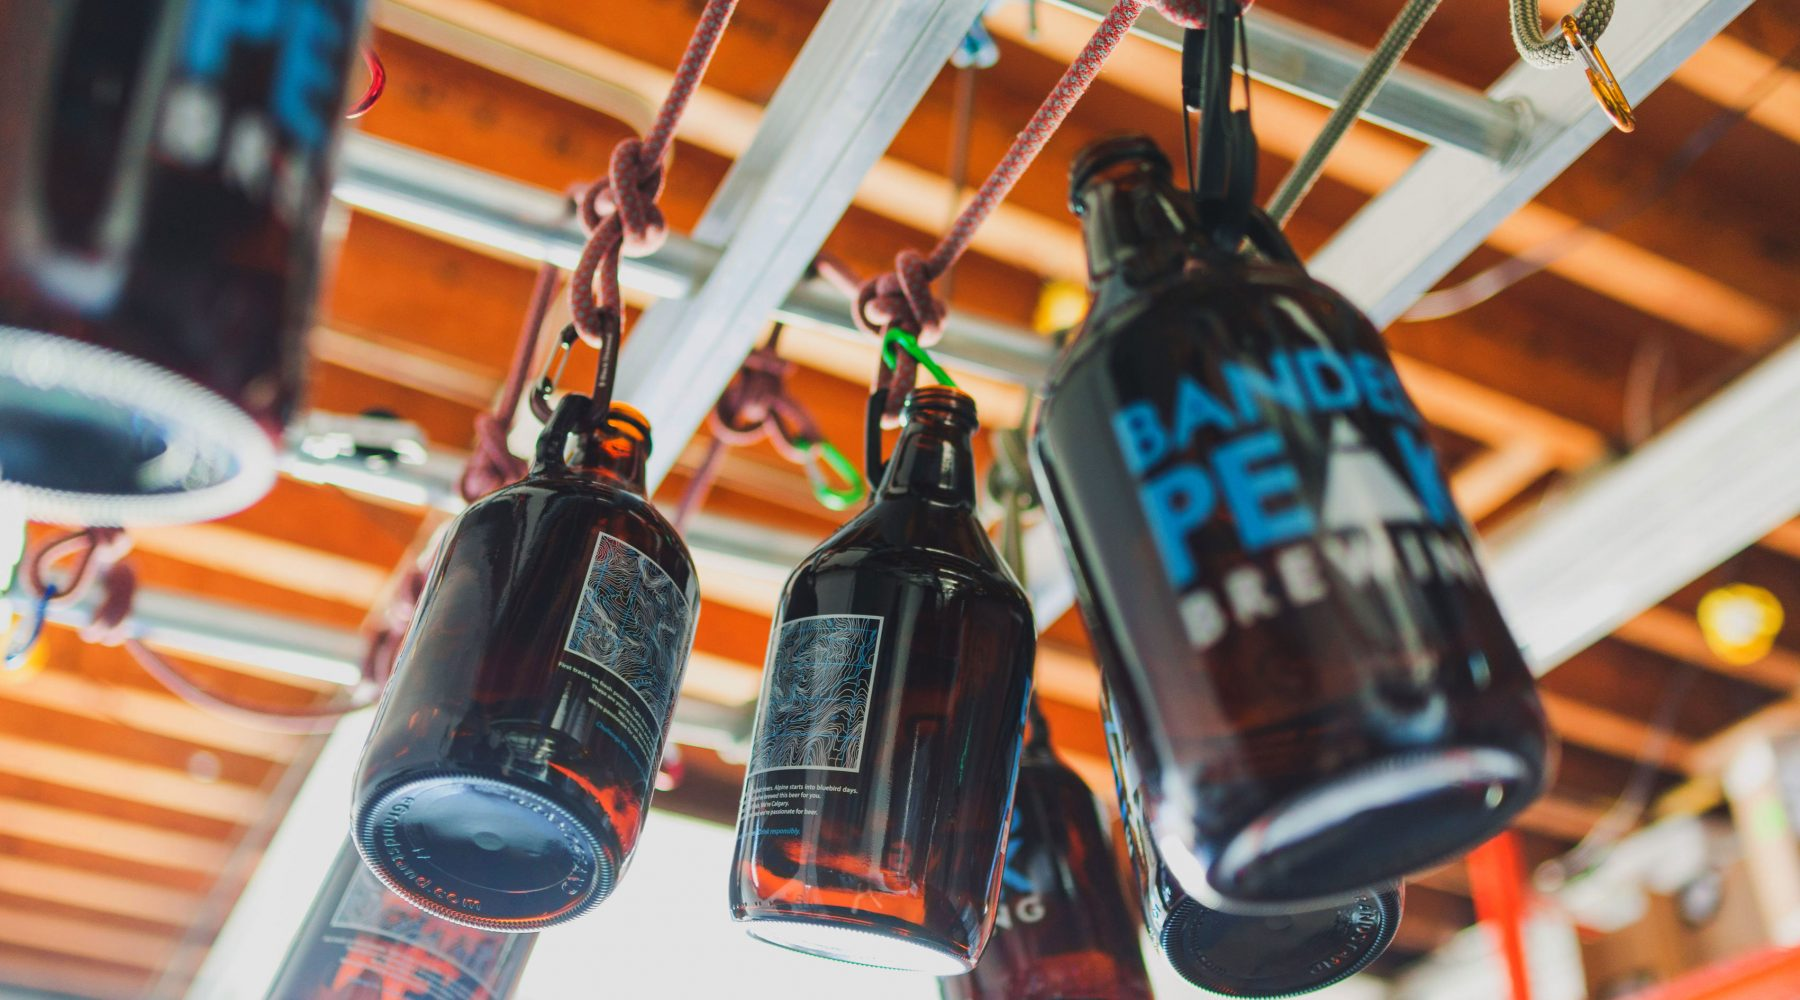 Labatt Breweries Acquires Banded Peak Brewing – What Does This Mean for Calgary's Barley Belt?